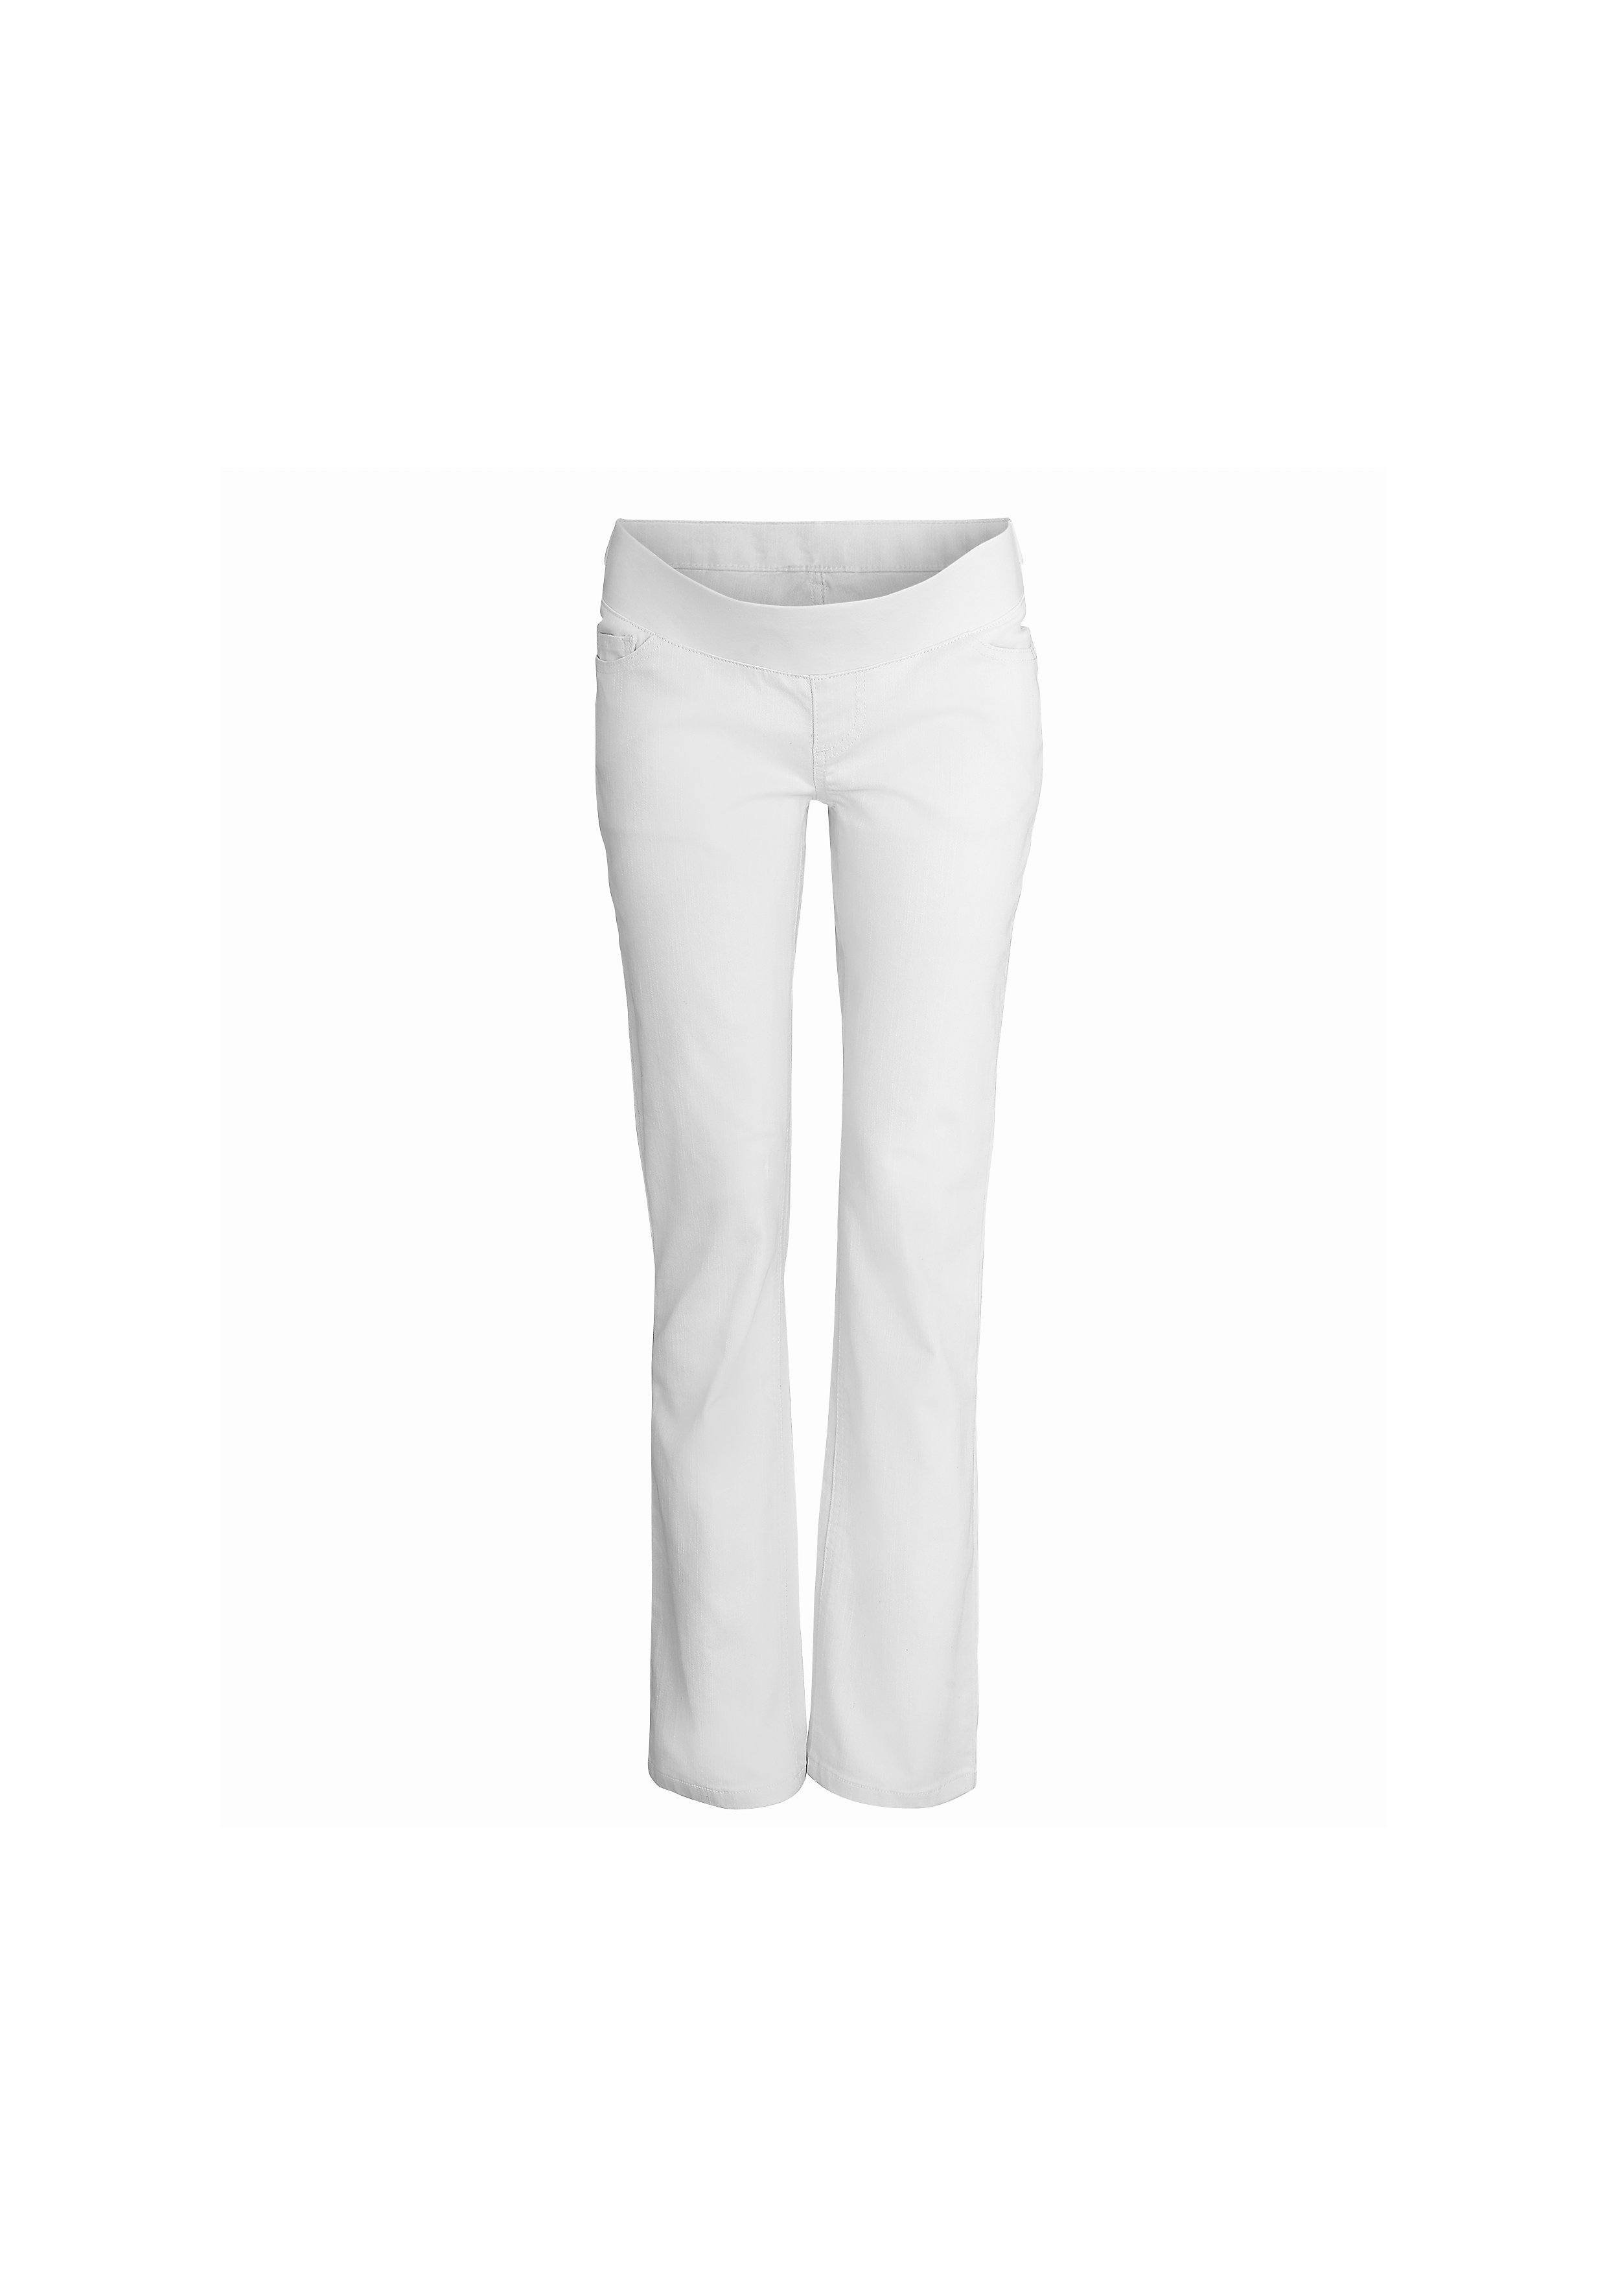 Mothercare | Women Maternity Jeans - White